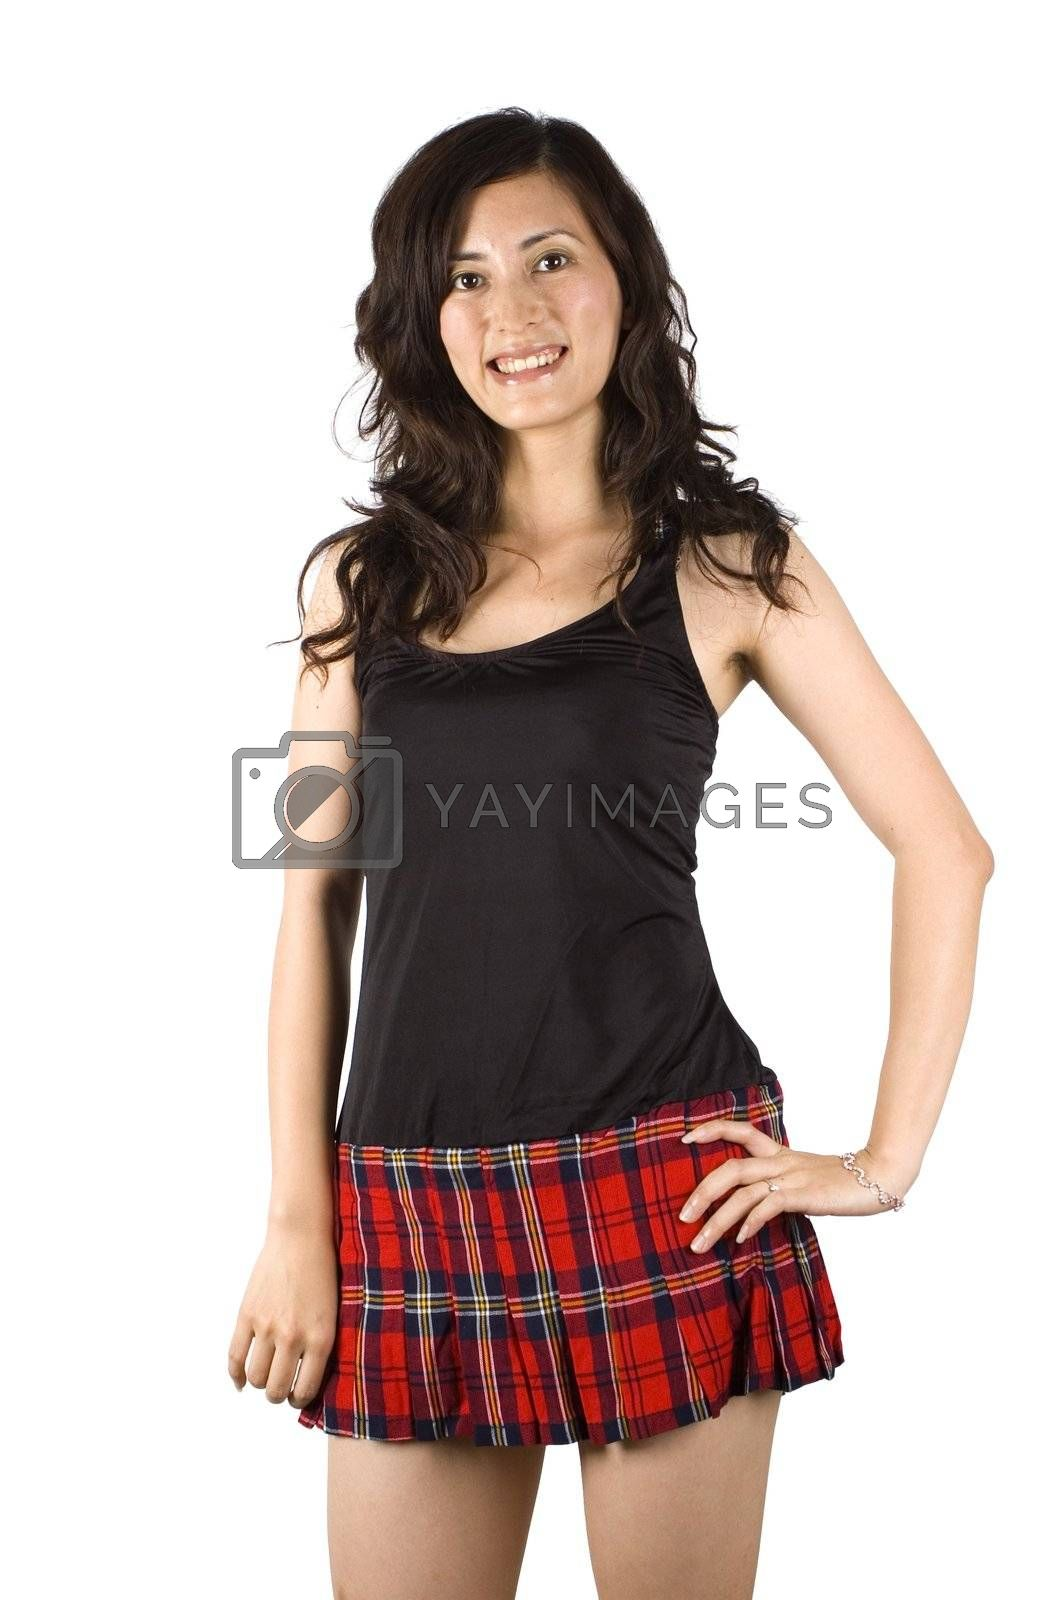 Royalty free image of Sexy Asian girl in short skirt by bartekchiny